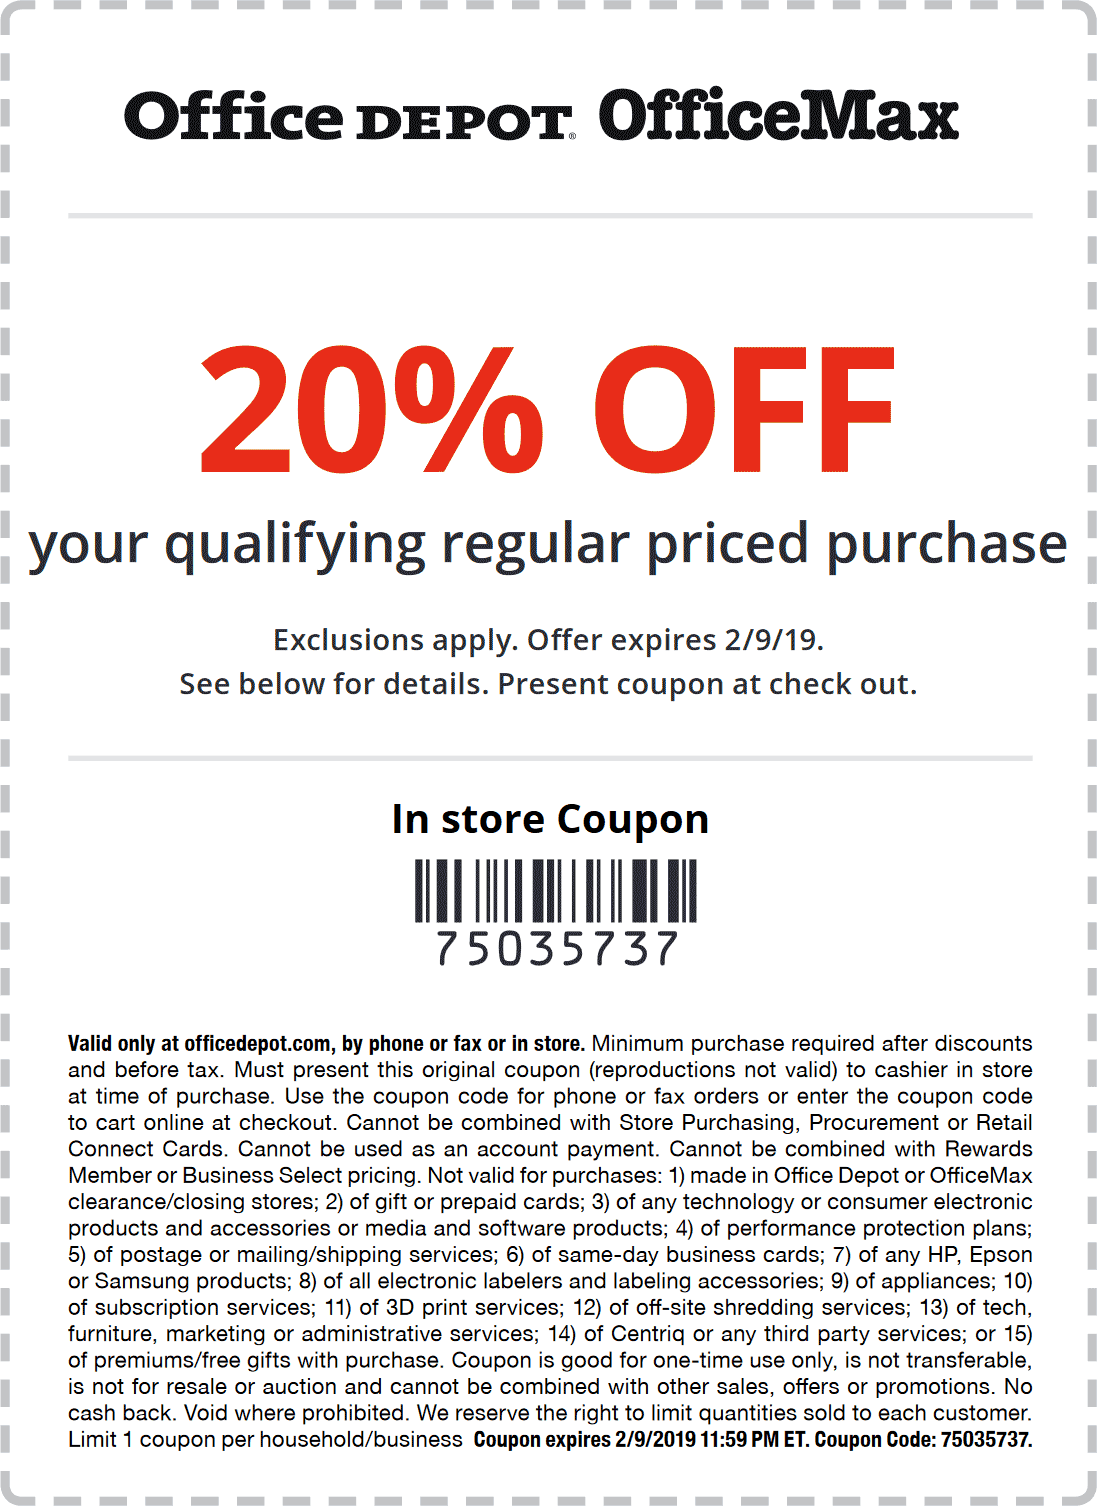 Pinned February 4th 20 Off At Officedepot Officemax Or Online Via Promo Code 75035737 Thecouponsapp Office Depot Store Coupons Coupons